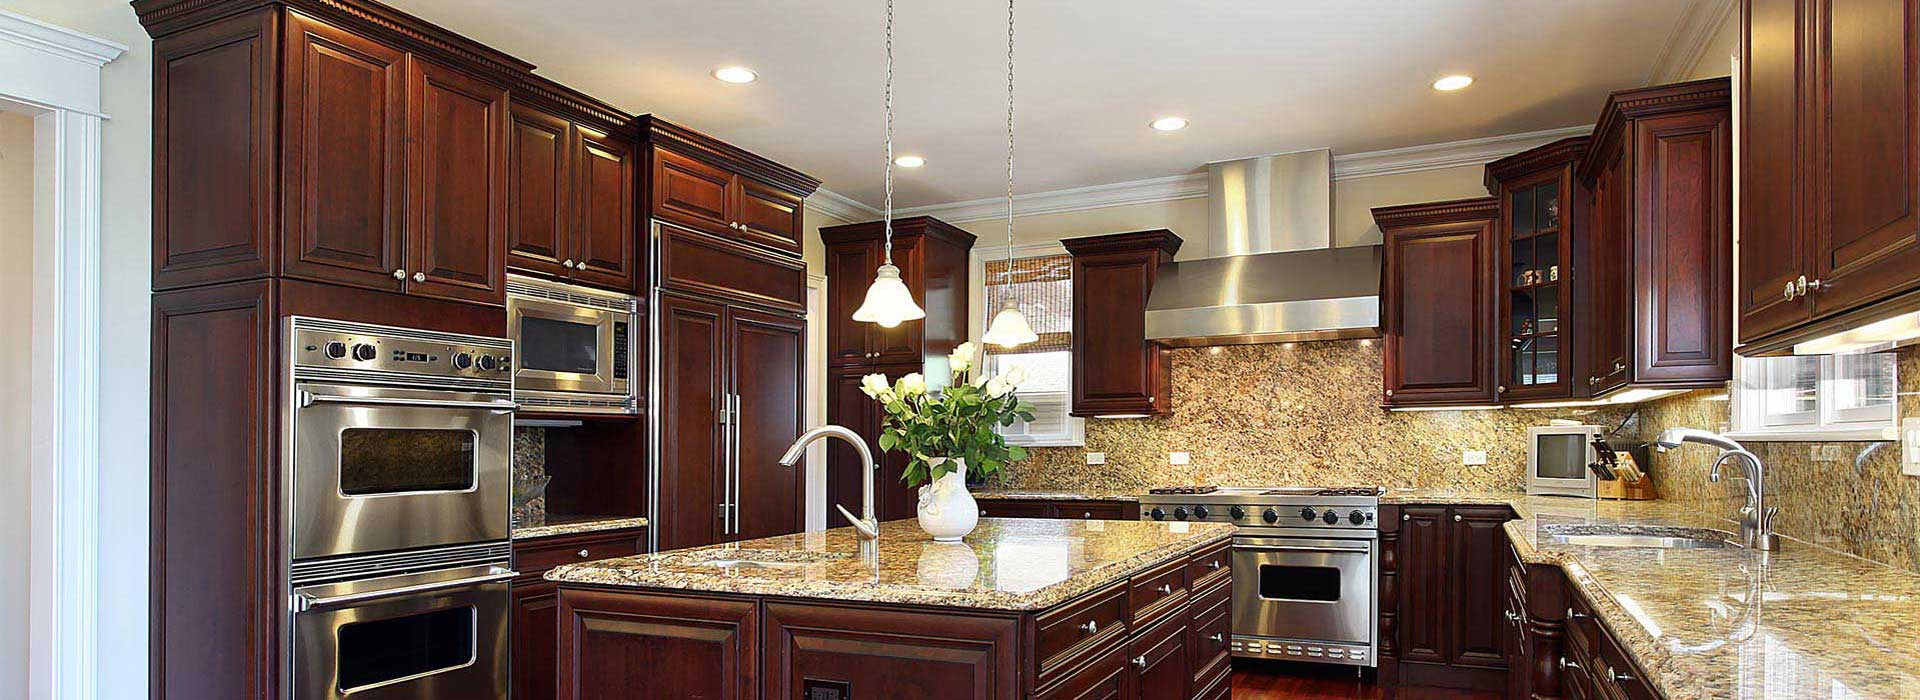 Kitchen Cabinets Queens Ny kitchen cabinets jamaica queens | bar cabinet